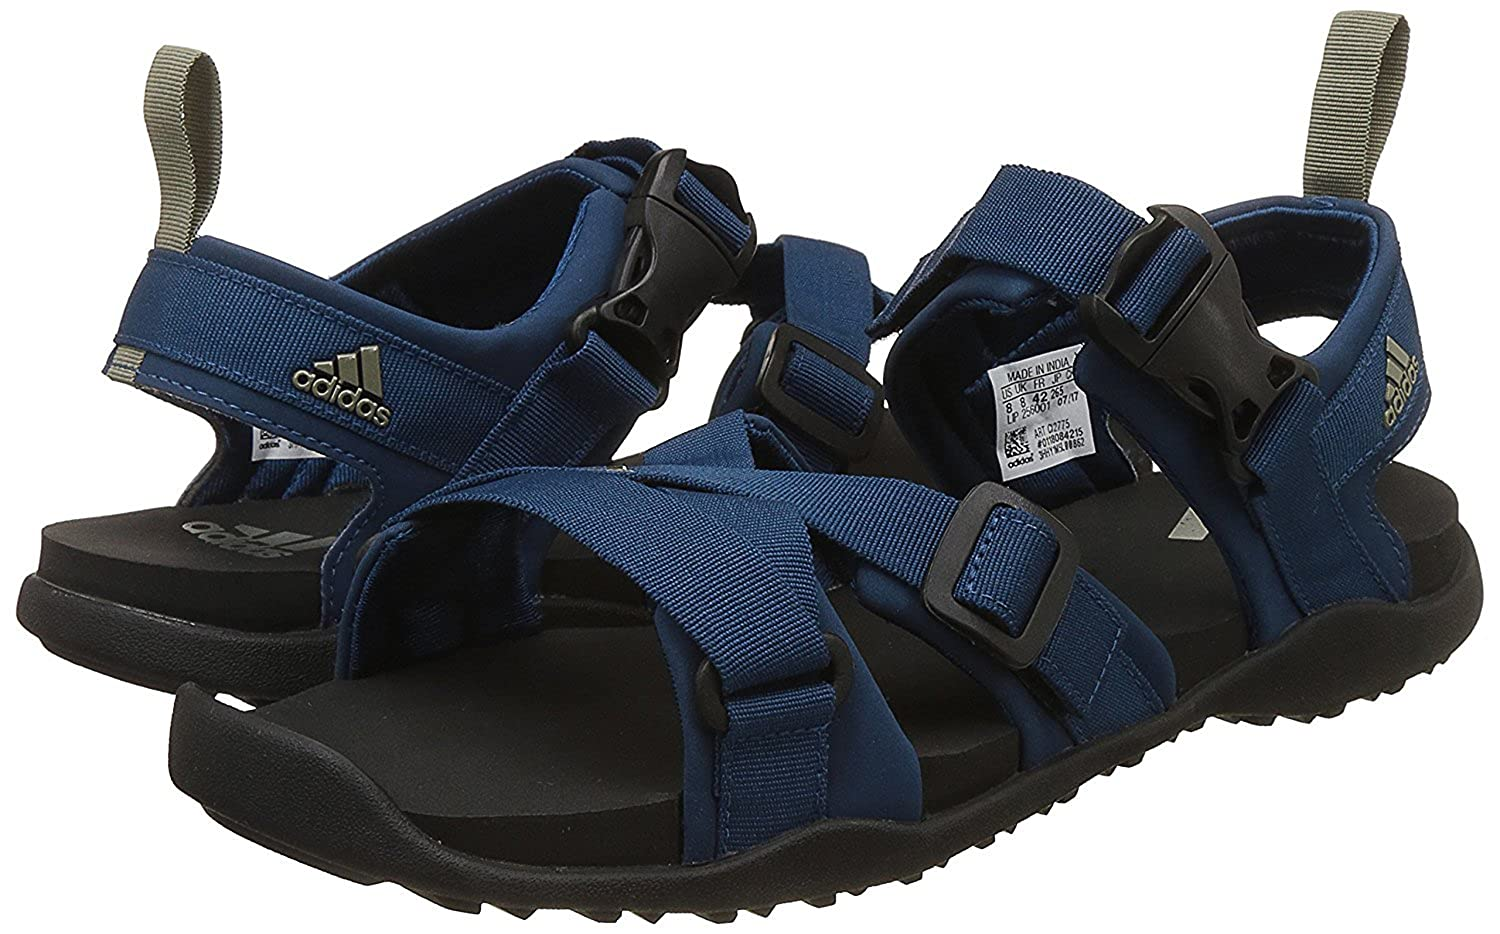 87831445df7 Adidas Men s Gladi M Blunit Traoli Sandals 12 UK  Buy Online at Low Prices  in India - Amazon.in